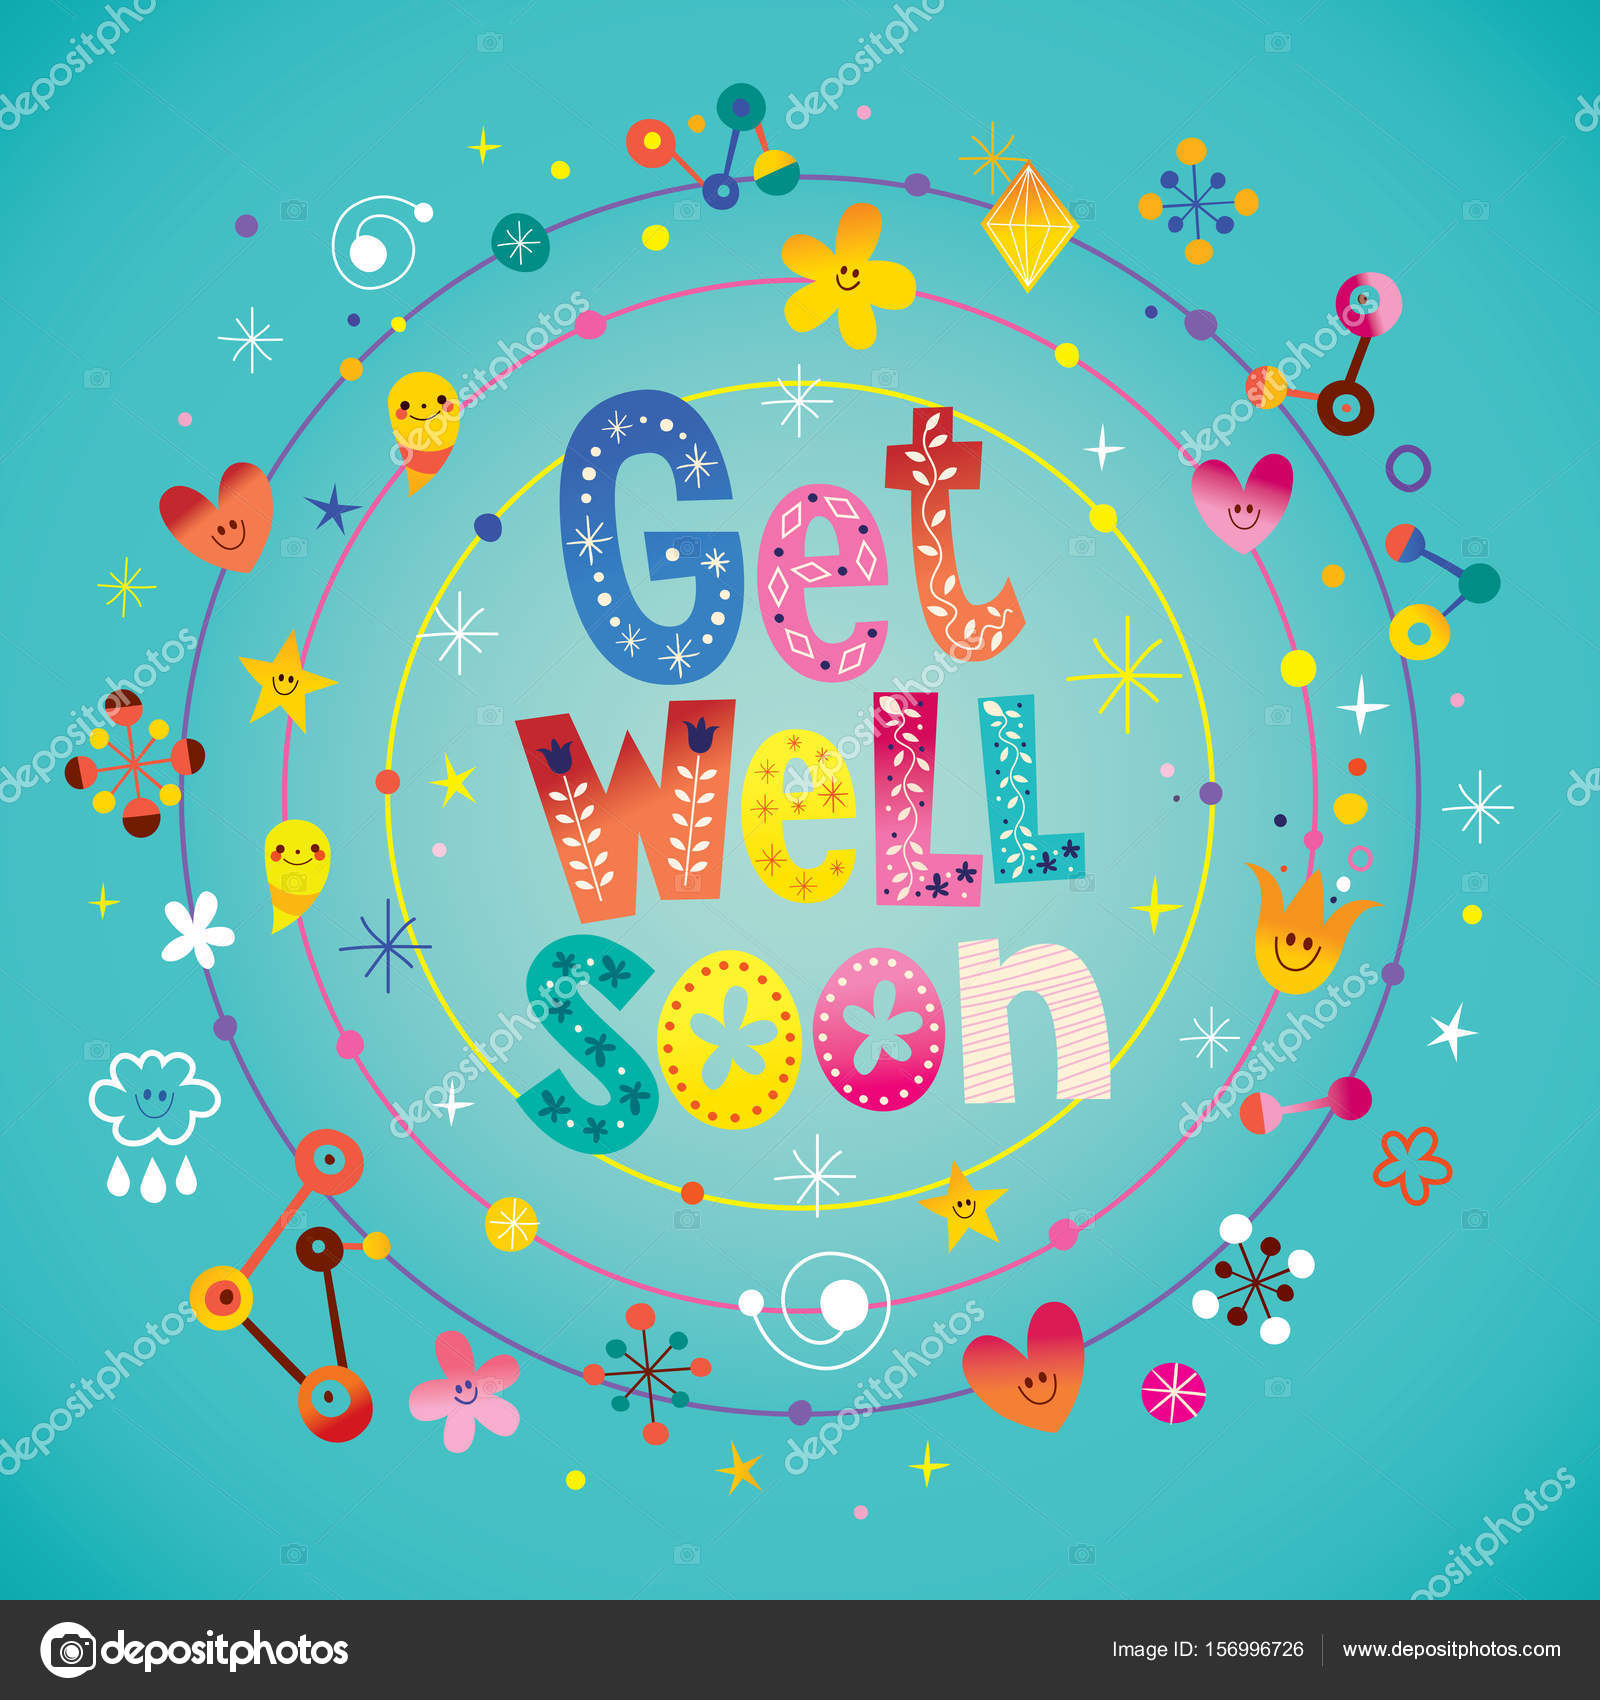 Get Well Soon Greeting Card Stock Vector Aliasching 156996726